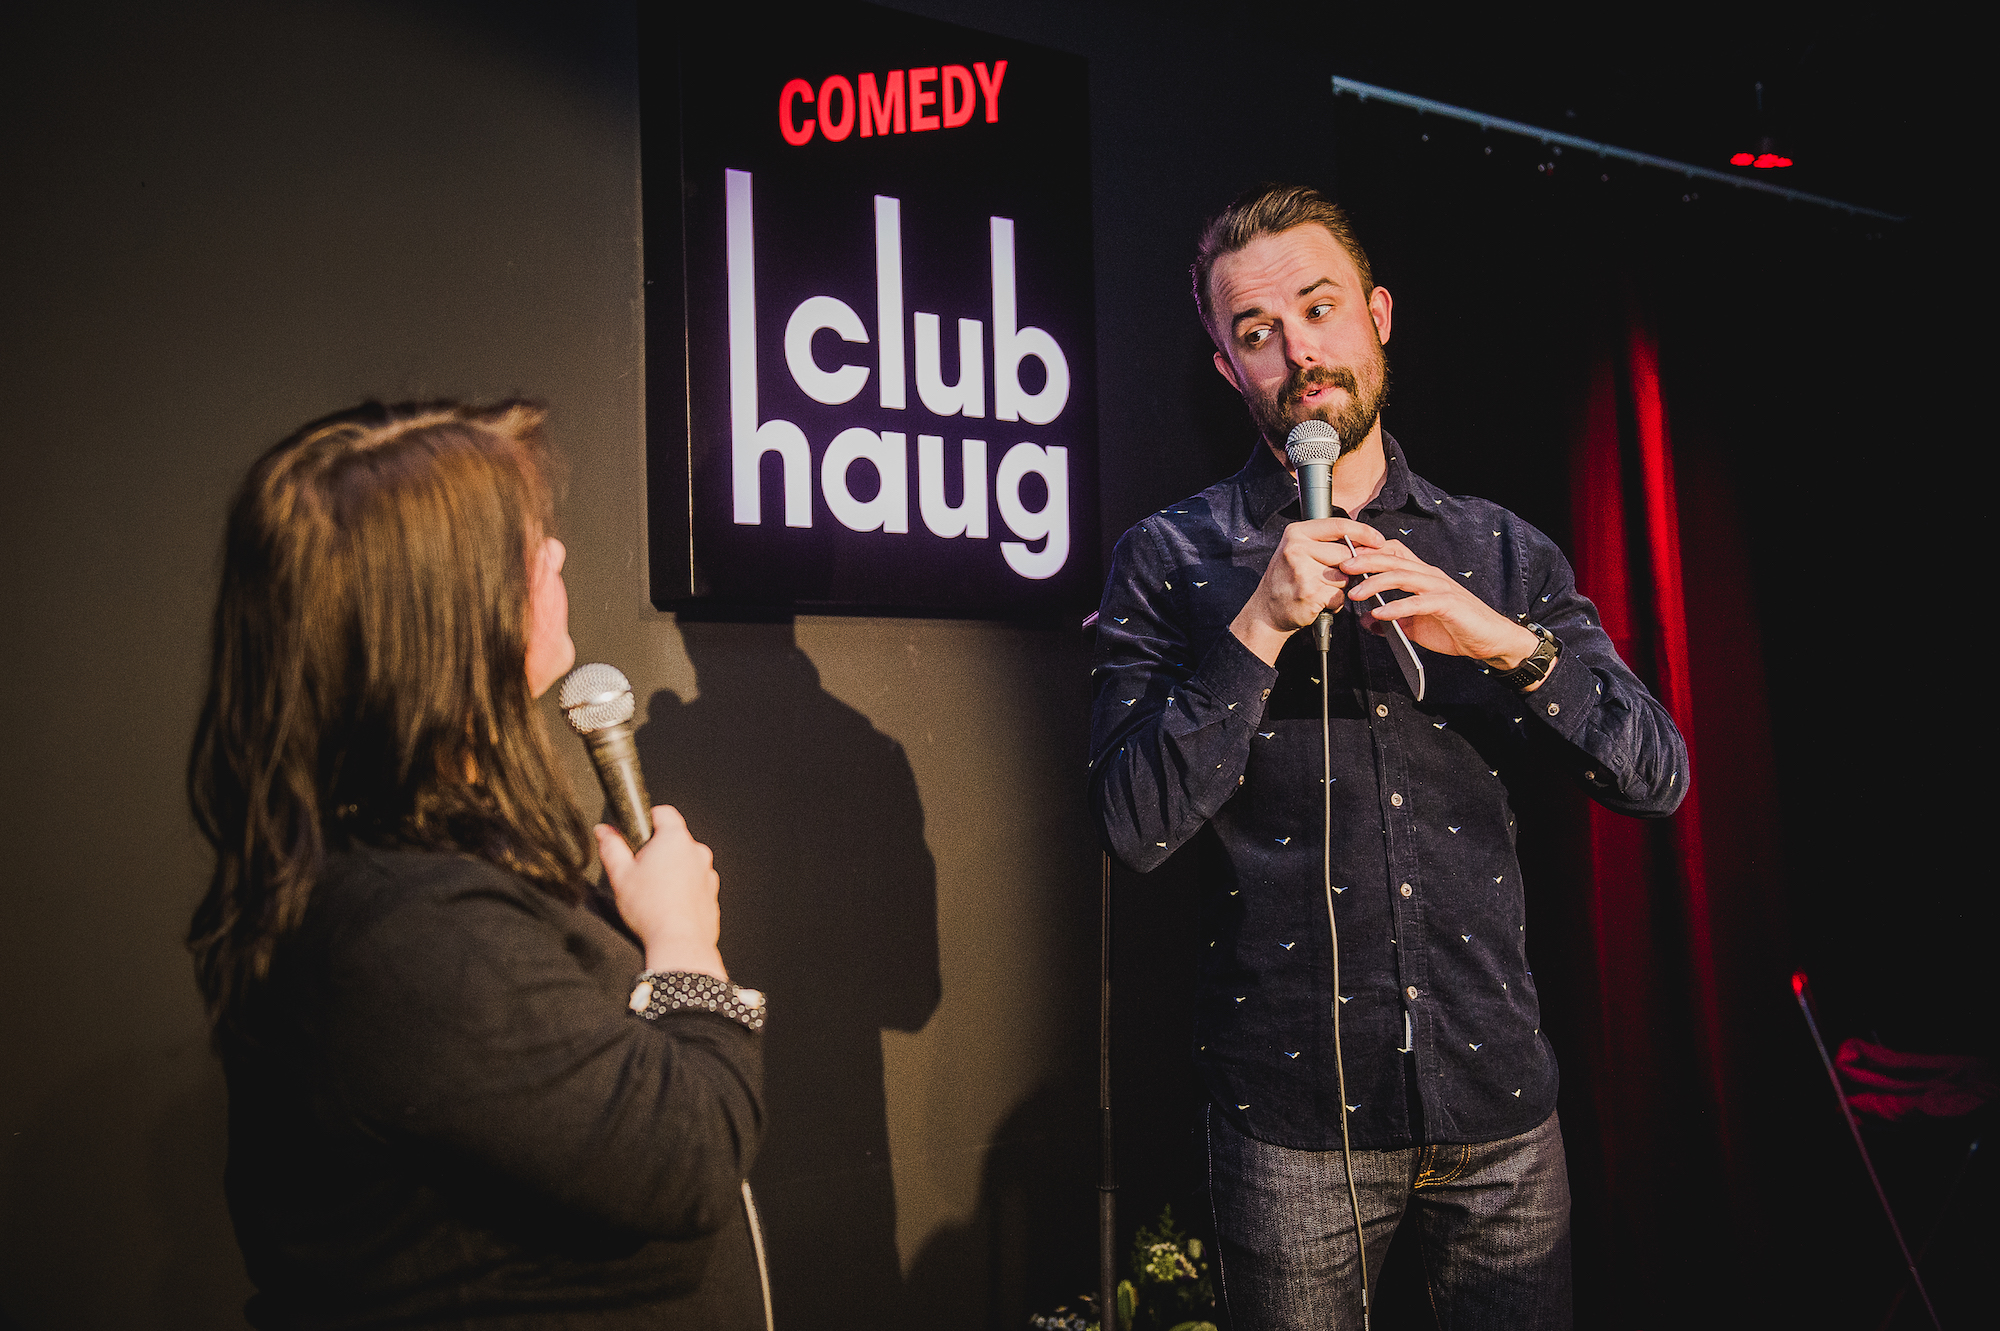 Comedy Club Haug